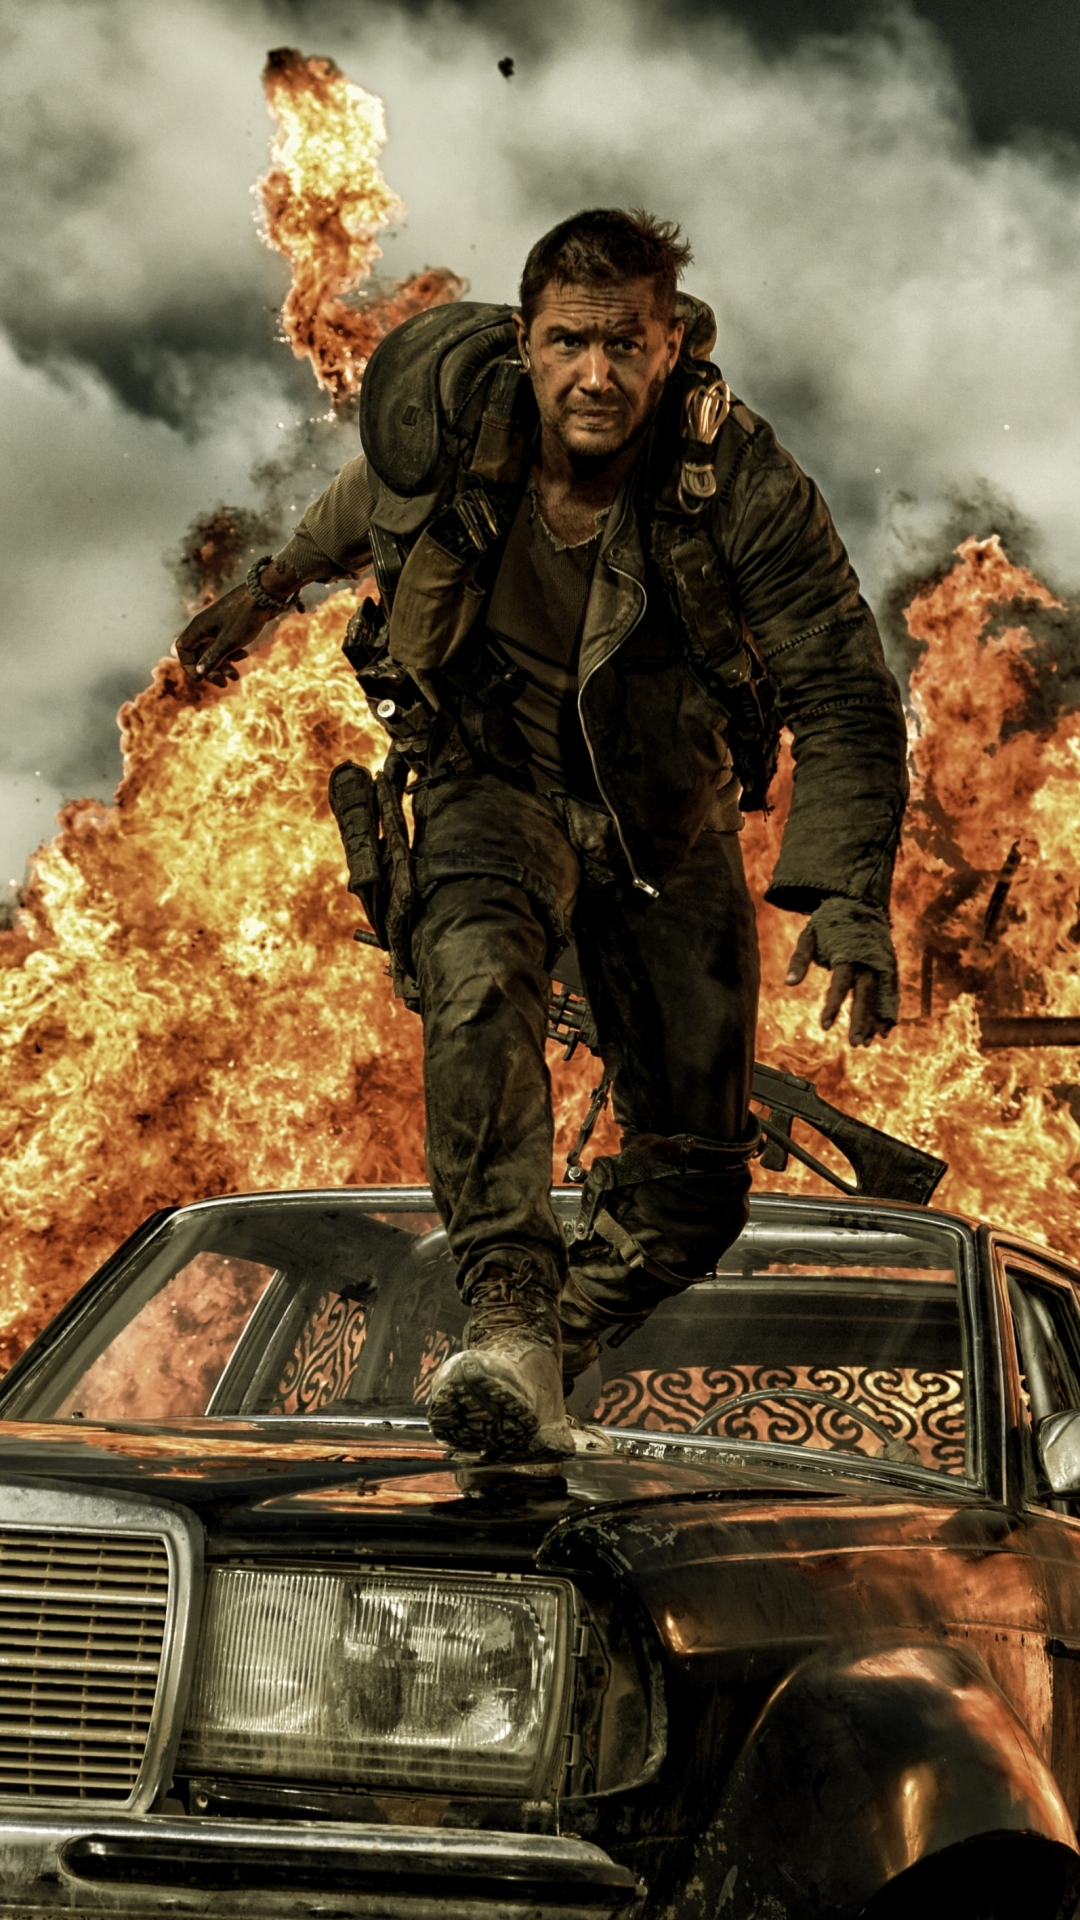 Mad Max Motorcycle >> iPhone 6 - Movie/Mad Max: Fury Road - Wallpaper ID: 358685